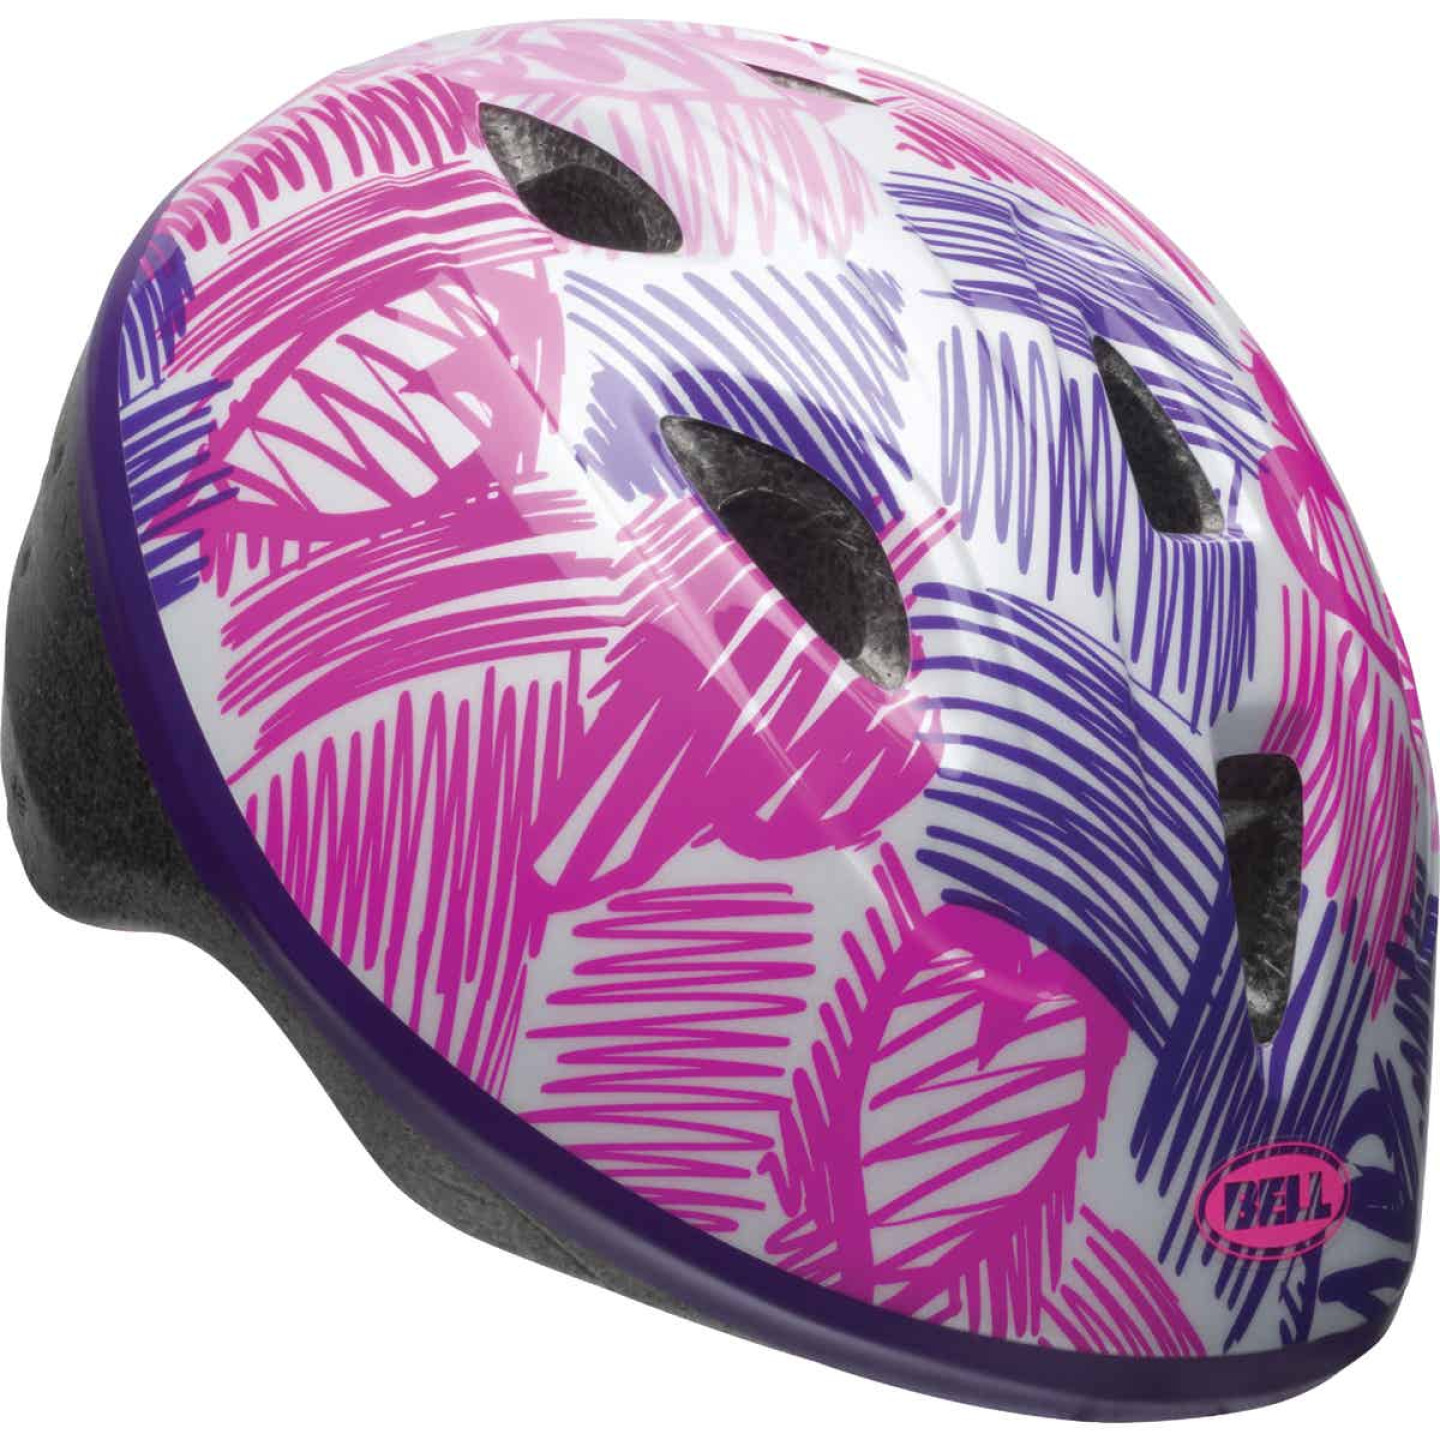 Bell Sports Girl's Toddler Bicycle Helmet Image 1